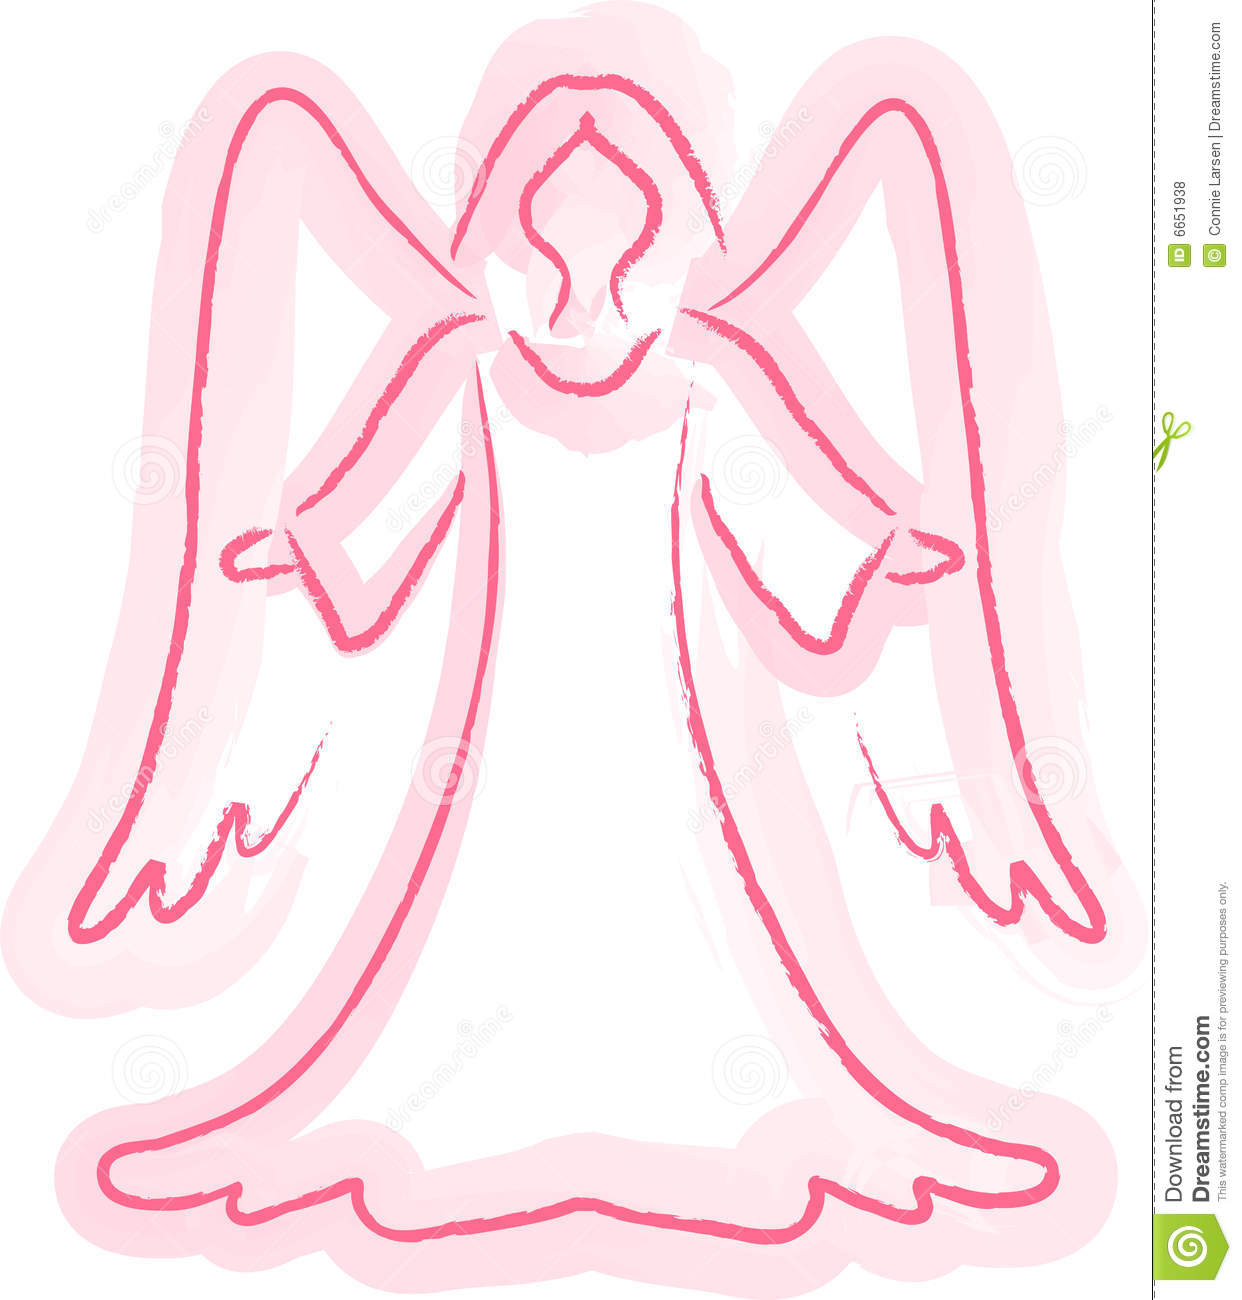 Angel Sketch Royalty Free Stock Photos - Image: 6651938